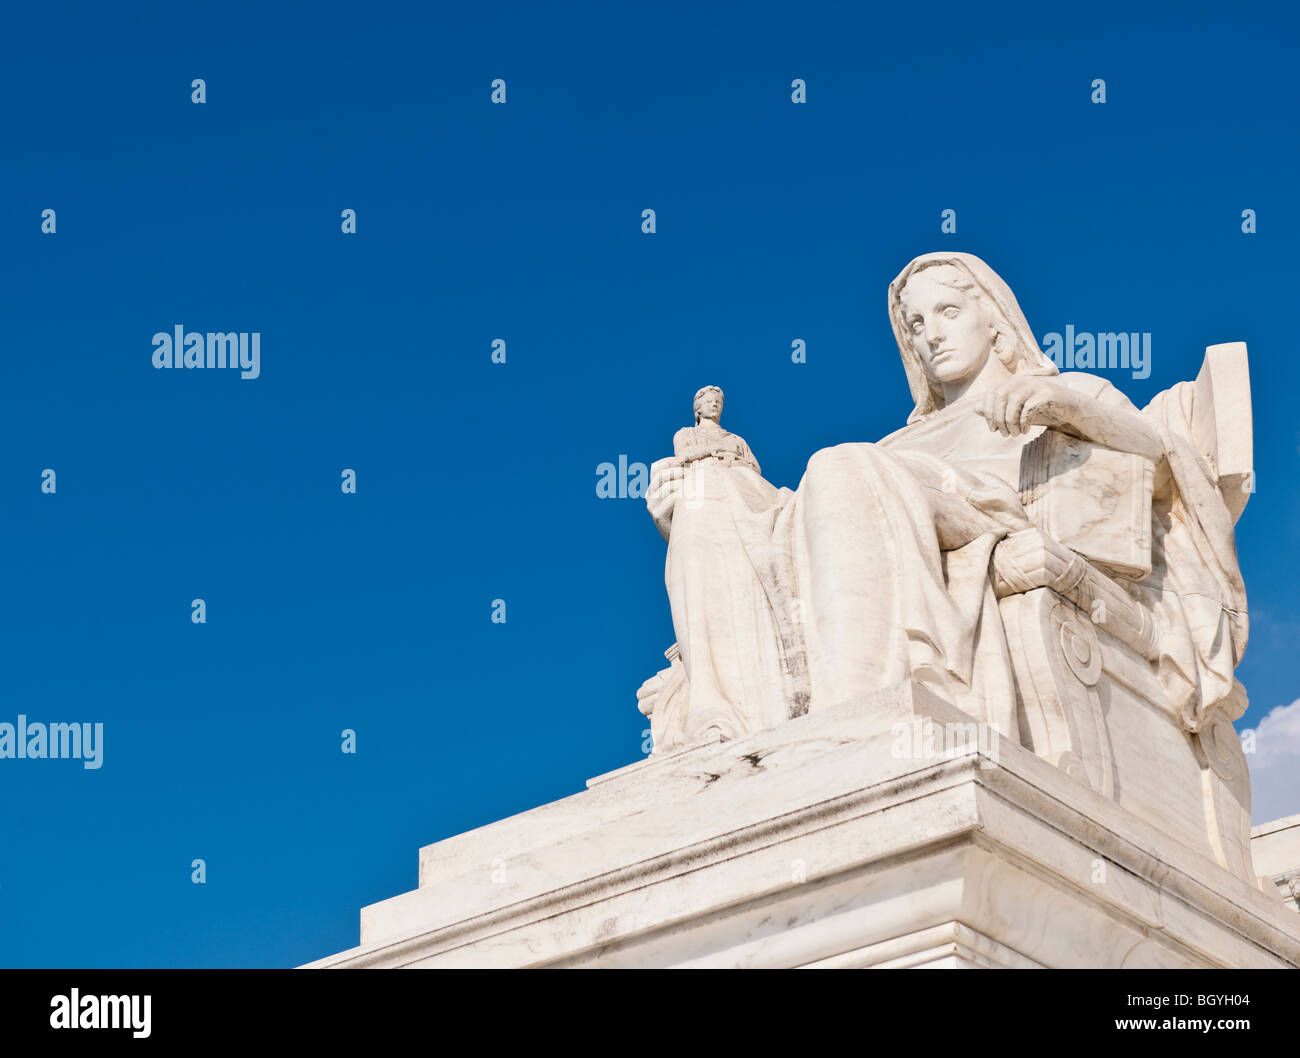 Contemplation of justice statue - Stock Image